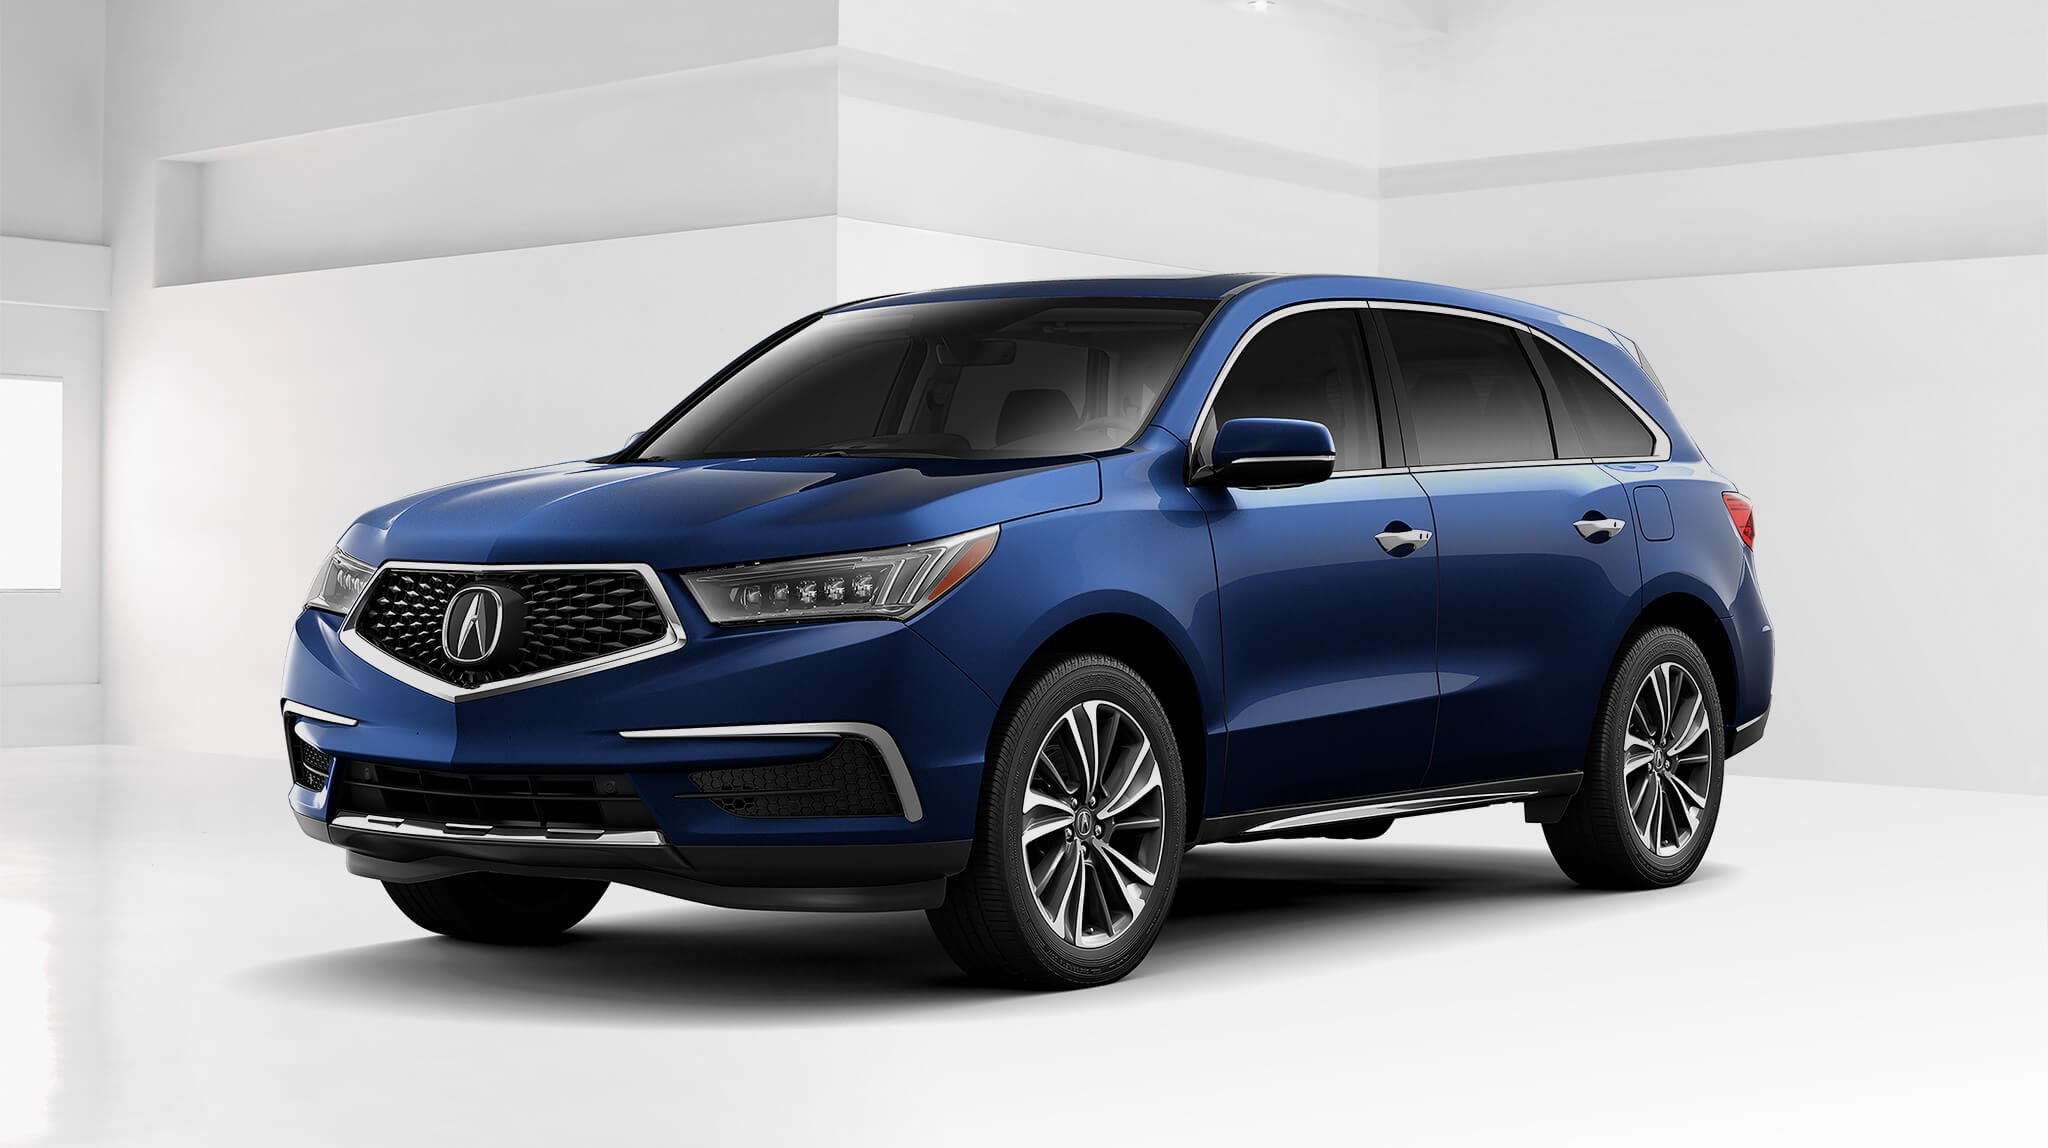 2017 Acura Mdx Sh Awd Capital Motor Cars Llc Auto Brokers